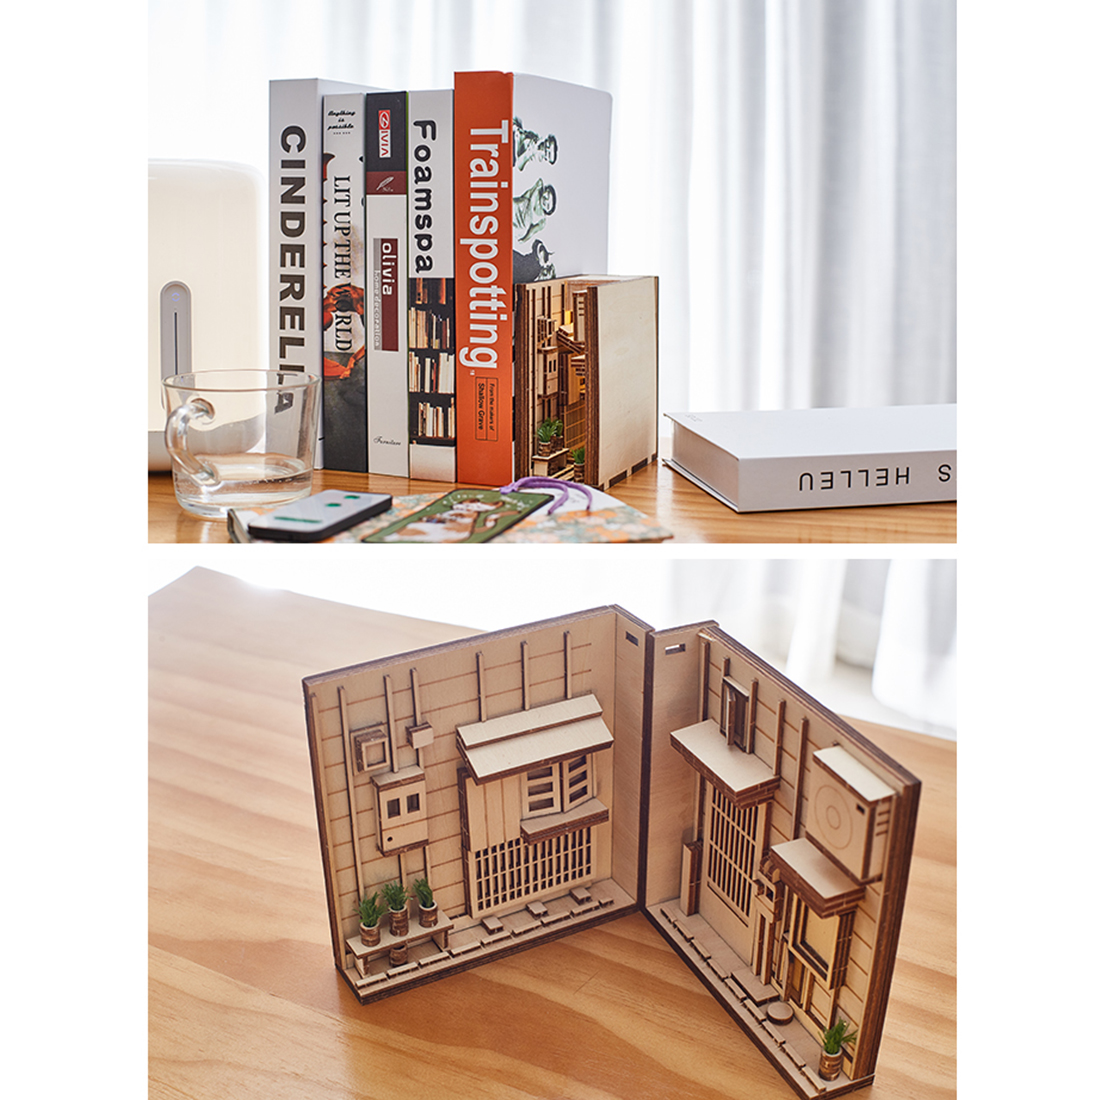 Diagon Alley 3D Miniature Book Nook